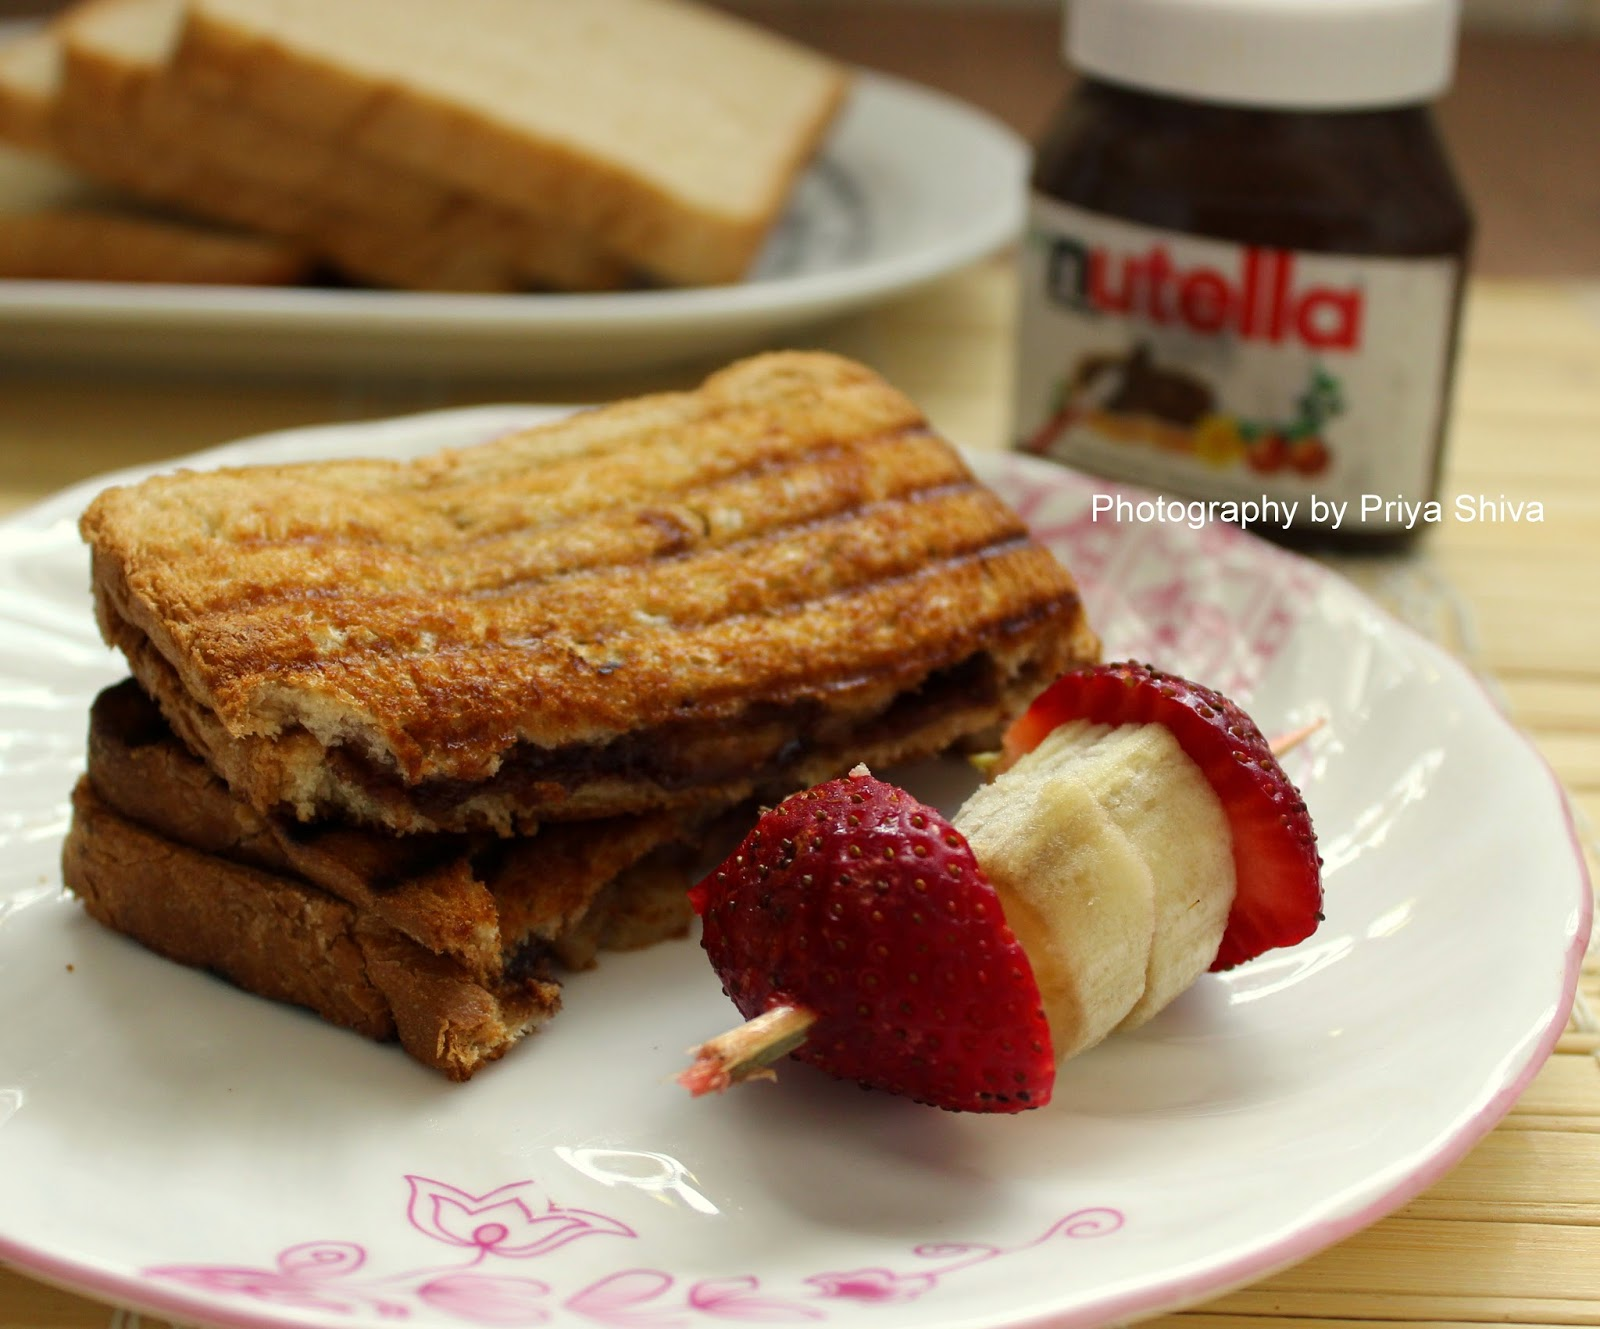 ... sandwich or perfect for lunch like the nutella banana sandwich